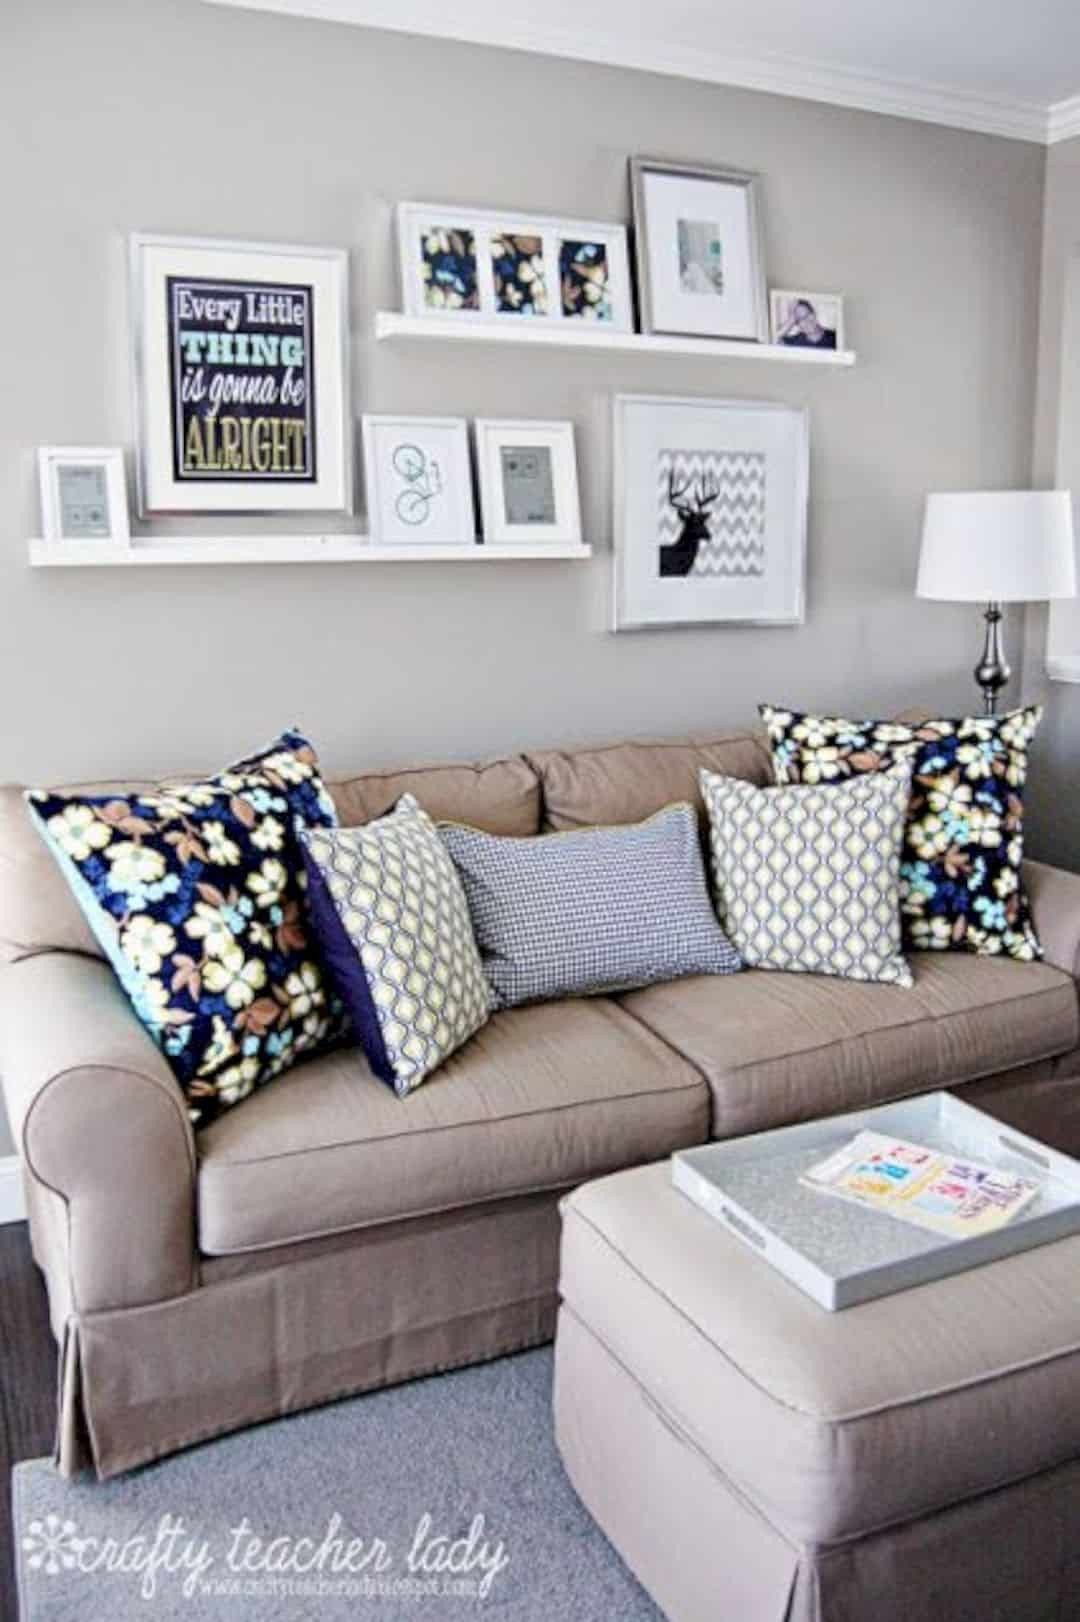 Ways To Decorate Your Living Room Walls 15 Impressive Wall Decorating Ideas For Your Living Room In 2020 Wall Decor Living Room Family Room Walls Living Room Wall